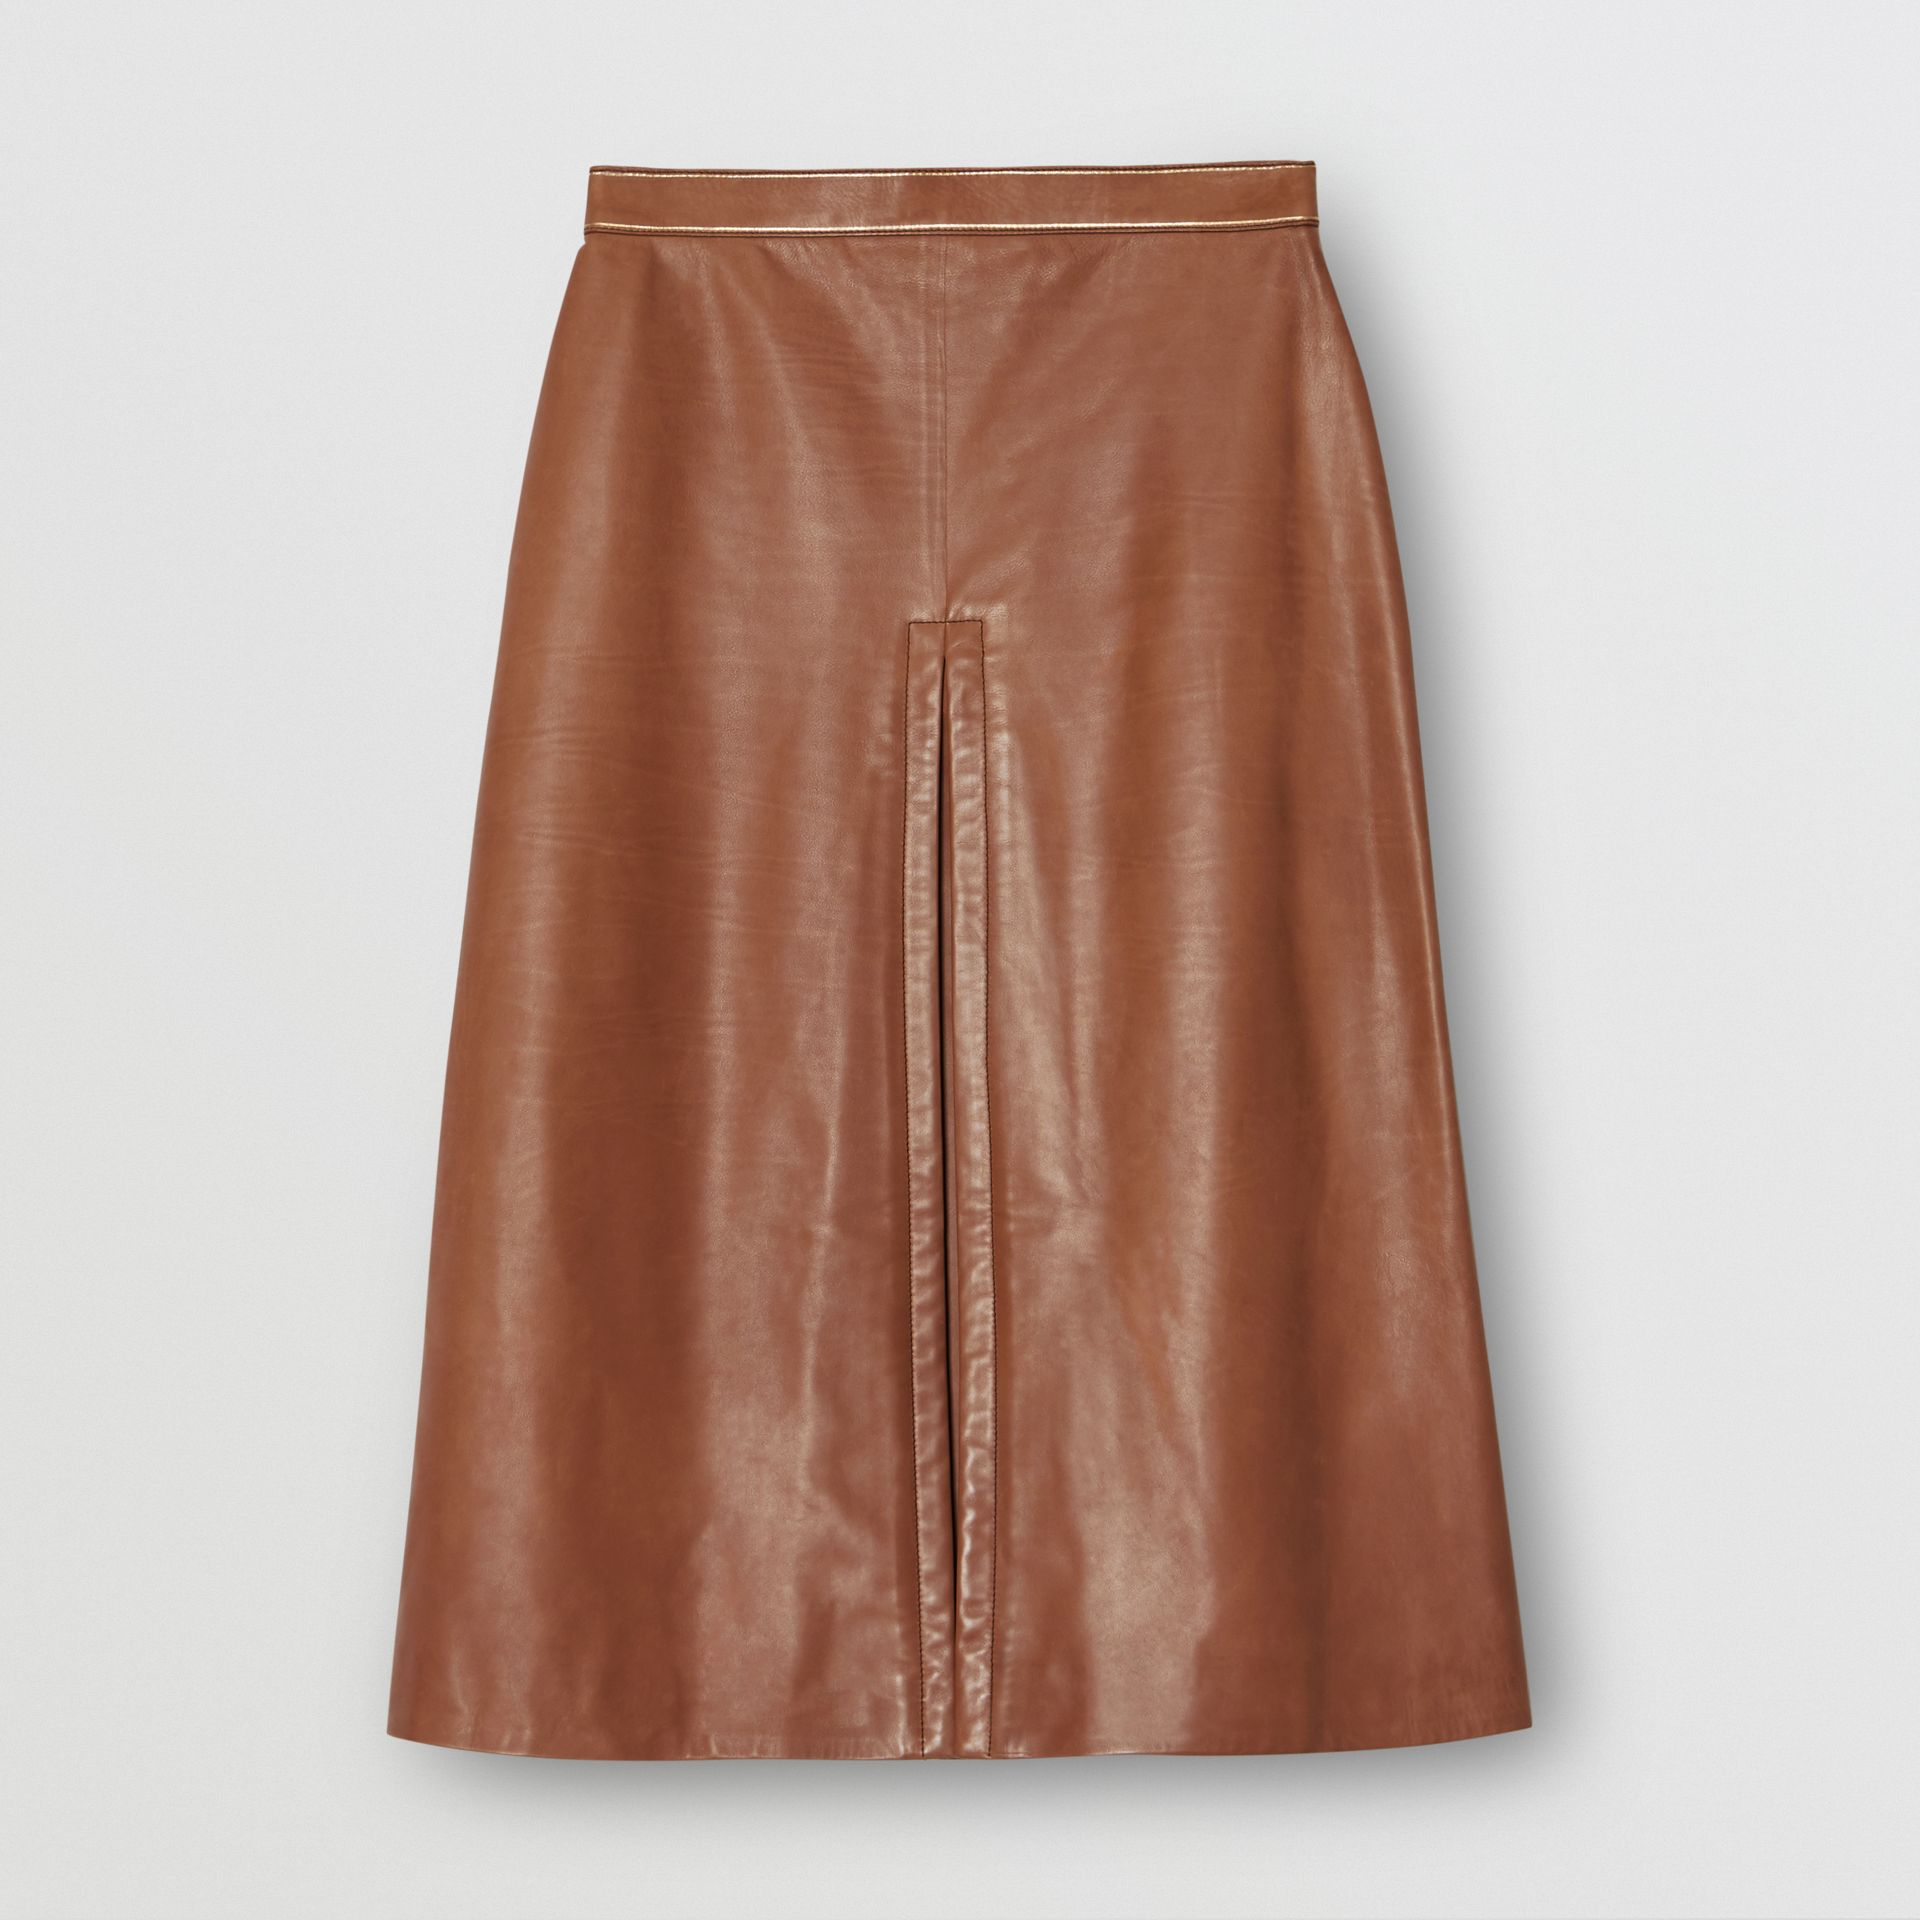 Box Pleat Detail Leather A-line Skirt in Flaxseed - Women | Burberry - gallery image 3